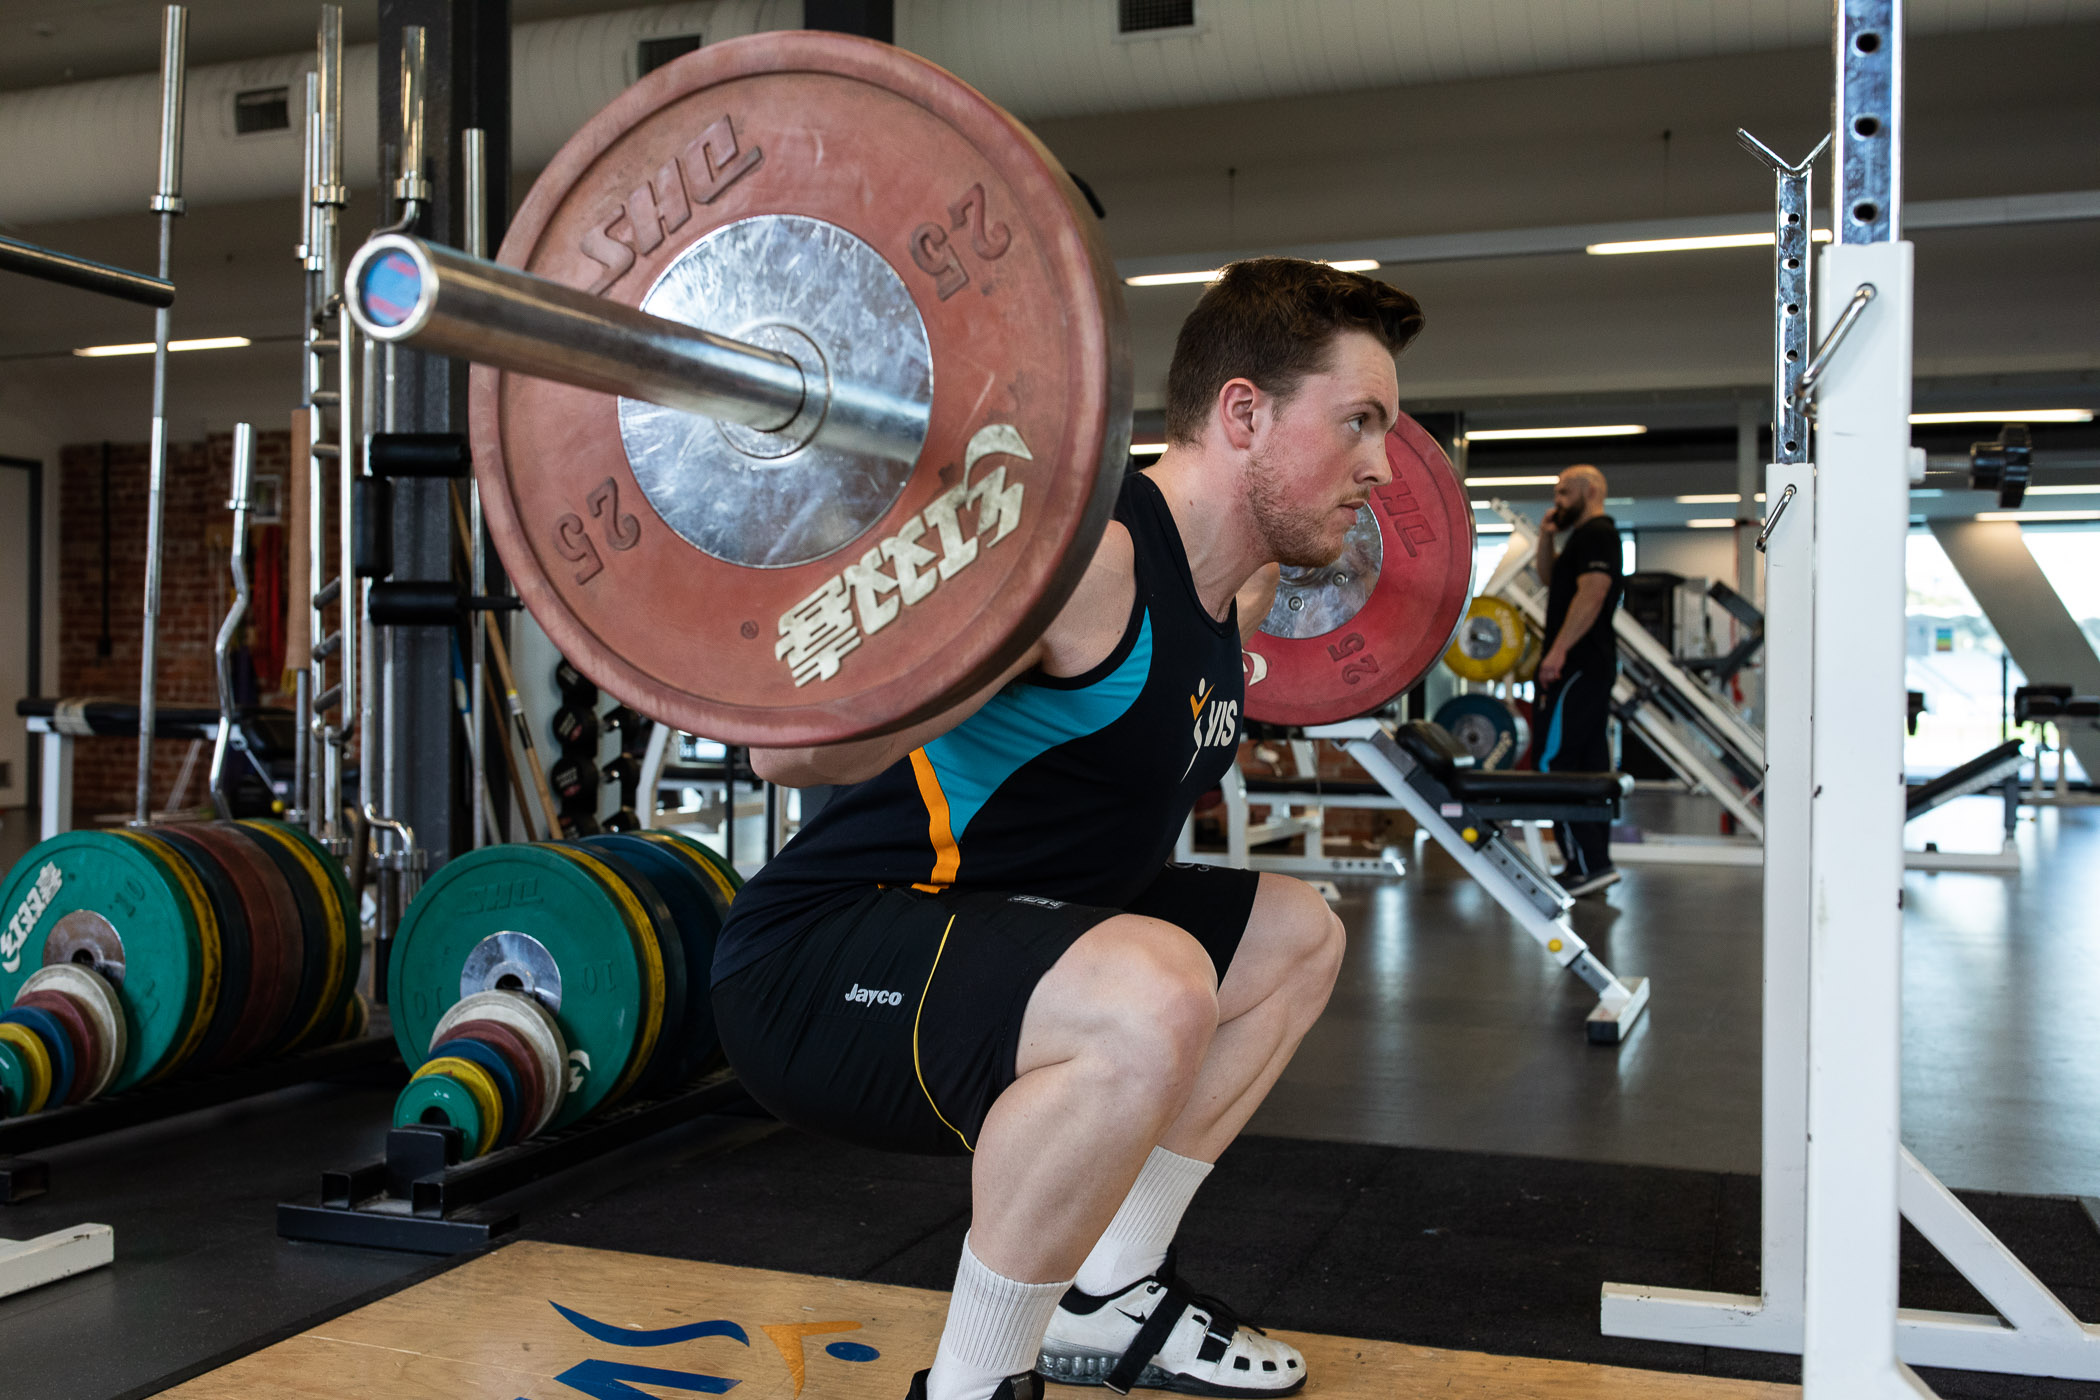 Image: Squats. Are they the best quads strengthening exercise?